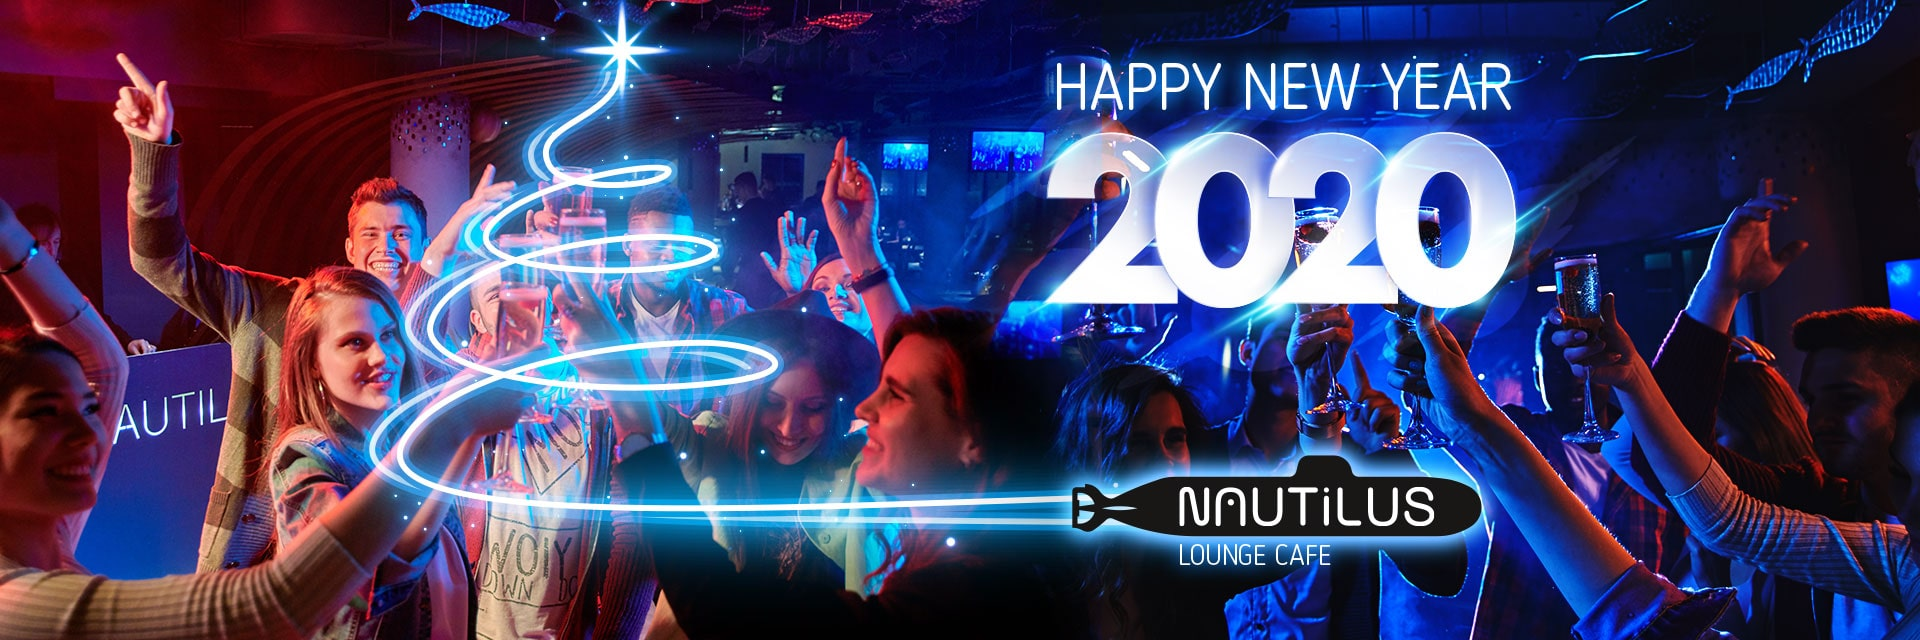 New Year Party 2020 в NAUTILUS Lounge Cafe в RESORT & SPA HOTEL NEMO, фото № 1